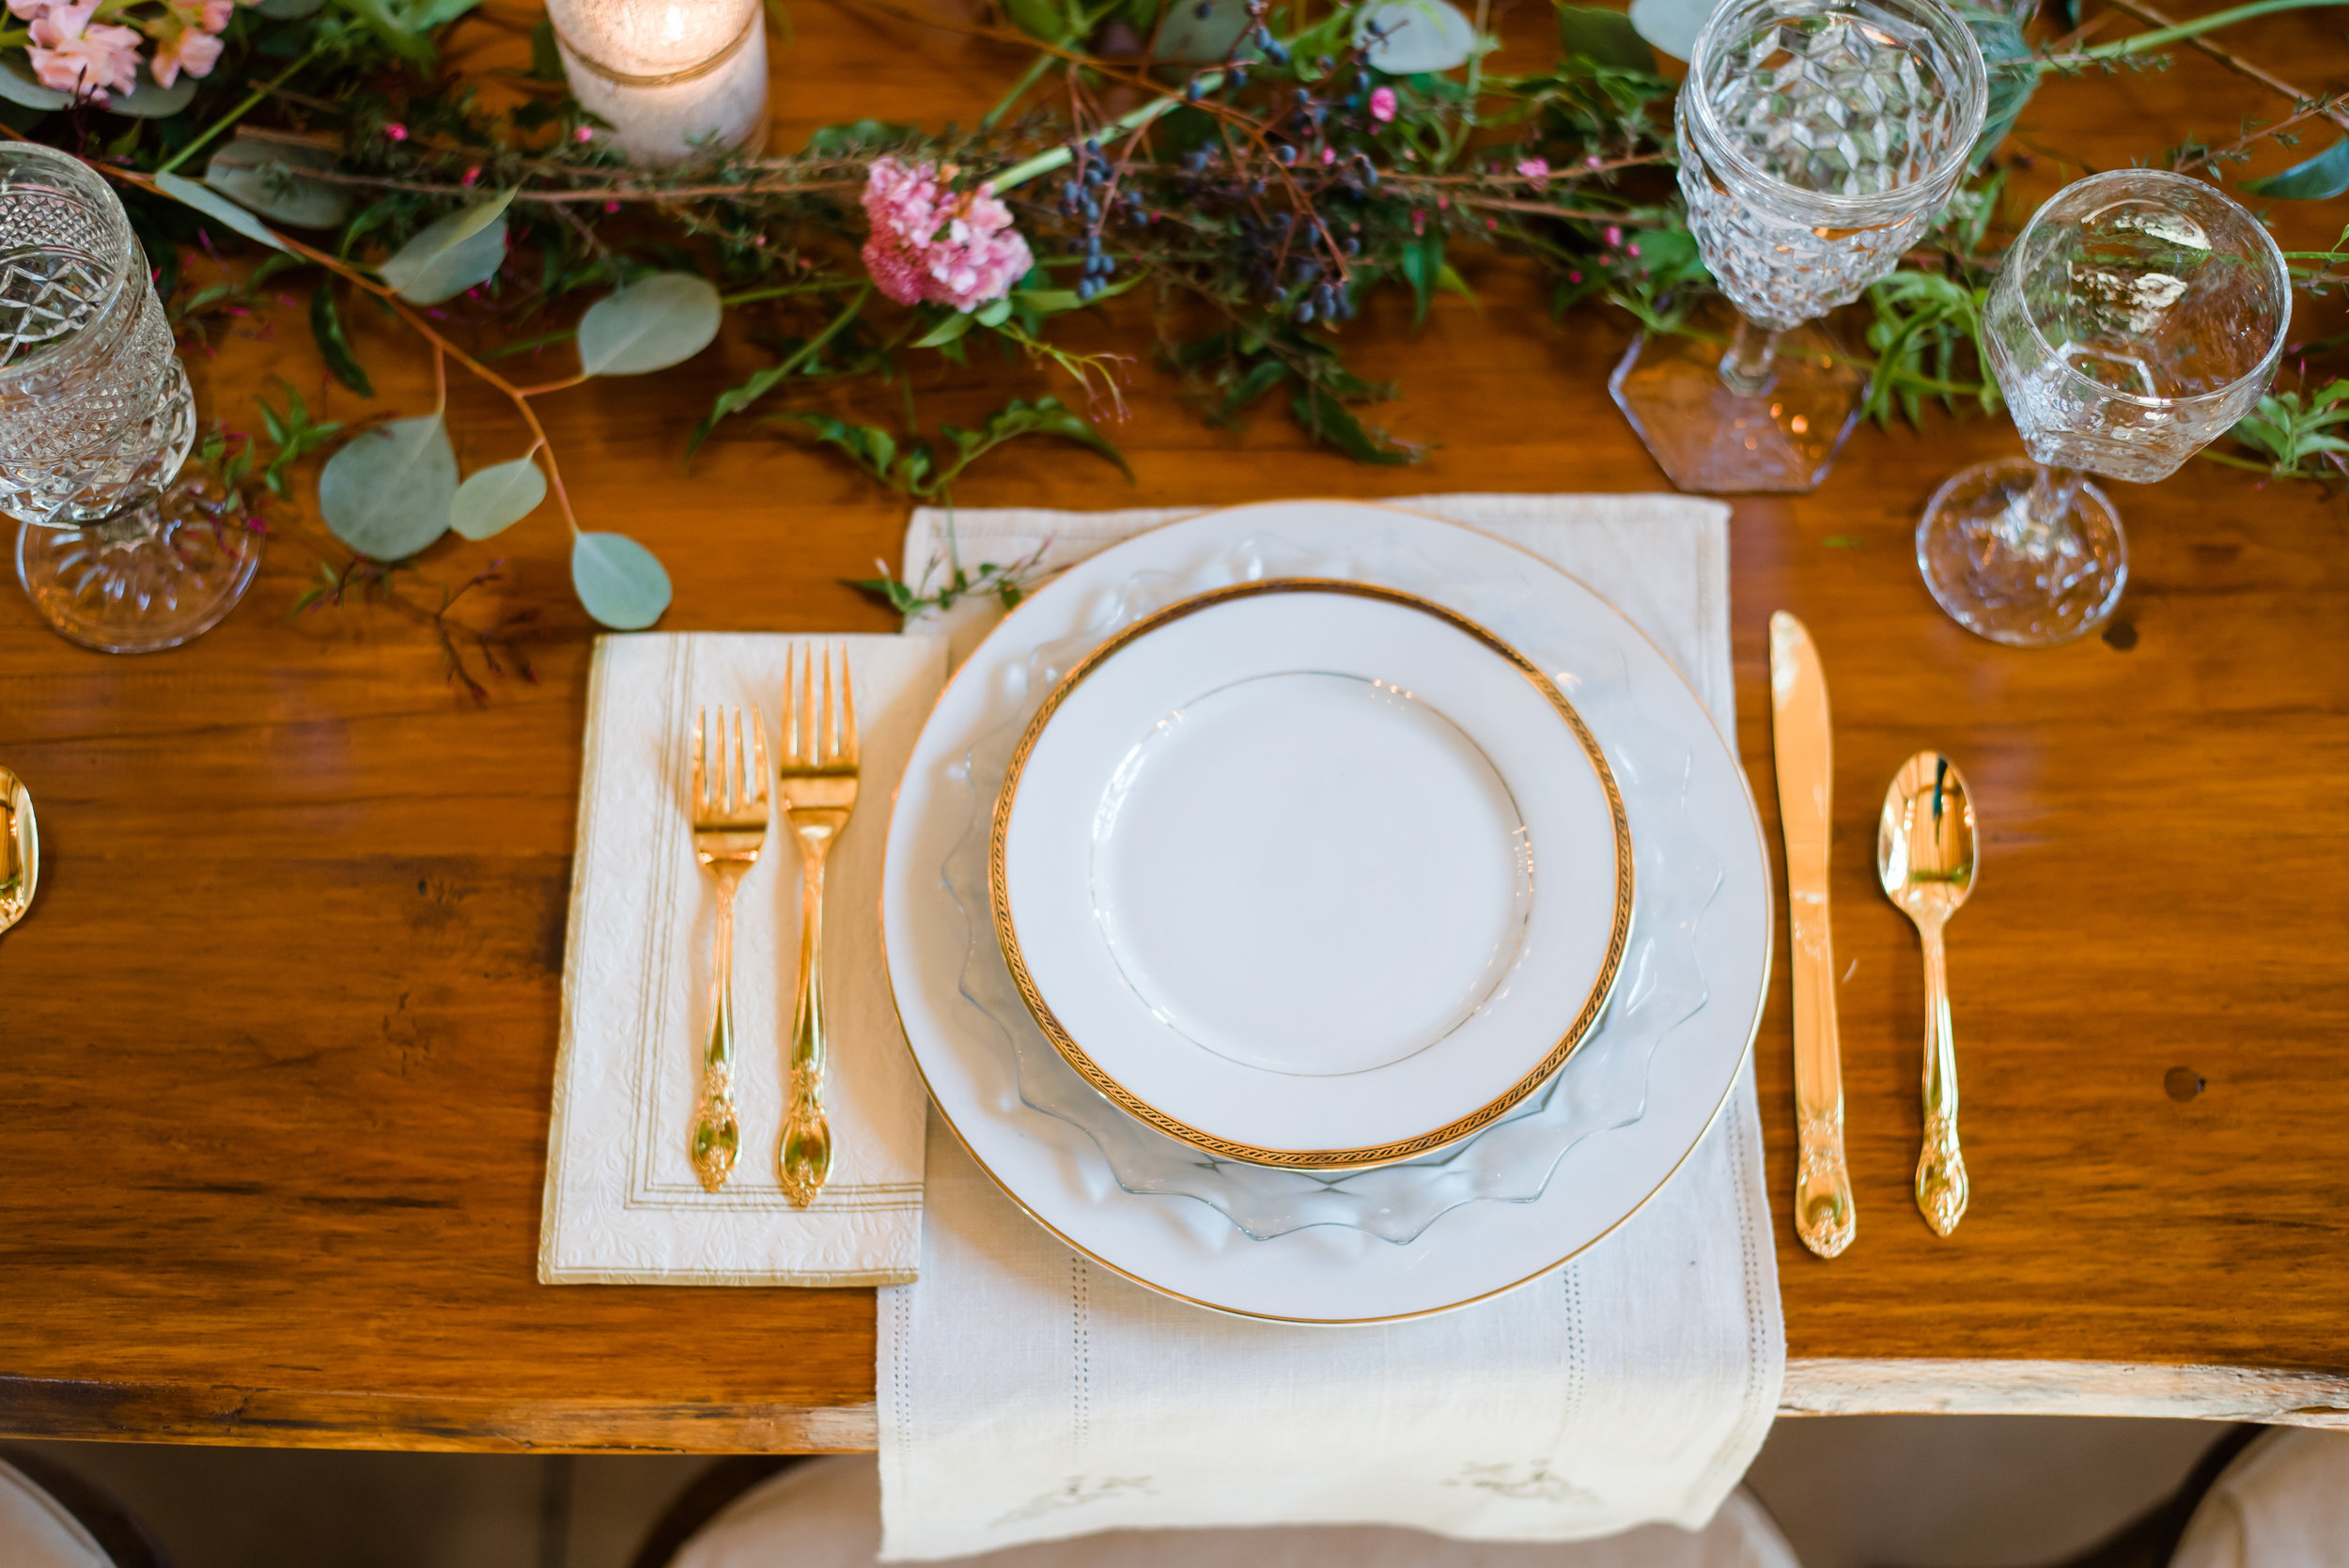 Classic Wedding Decor at Hiwassee River Weddings